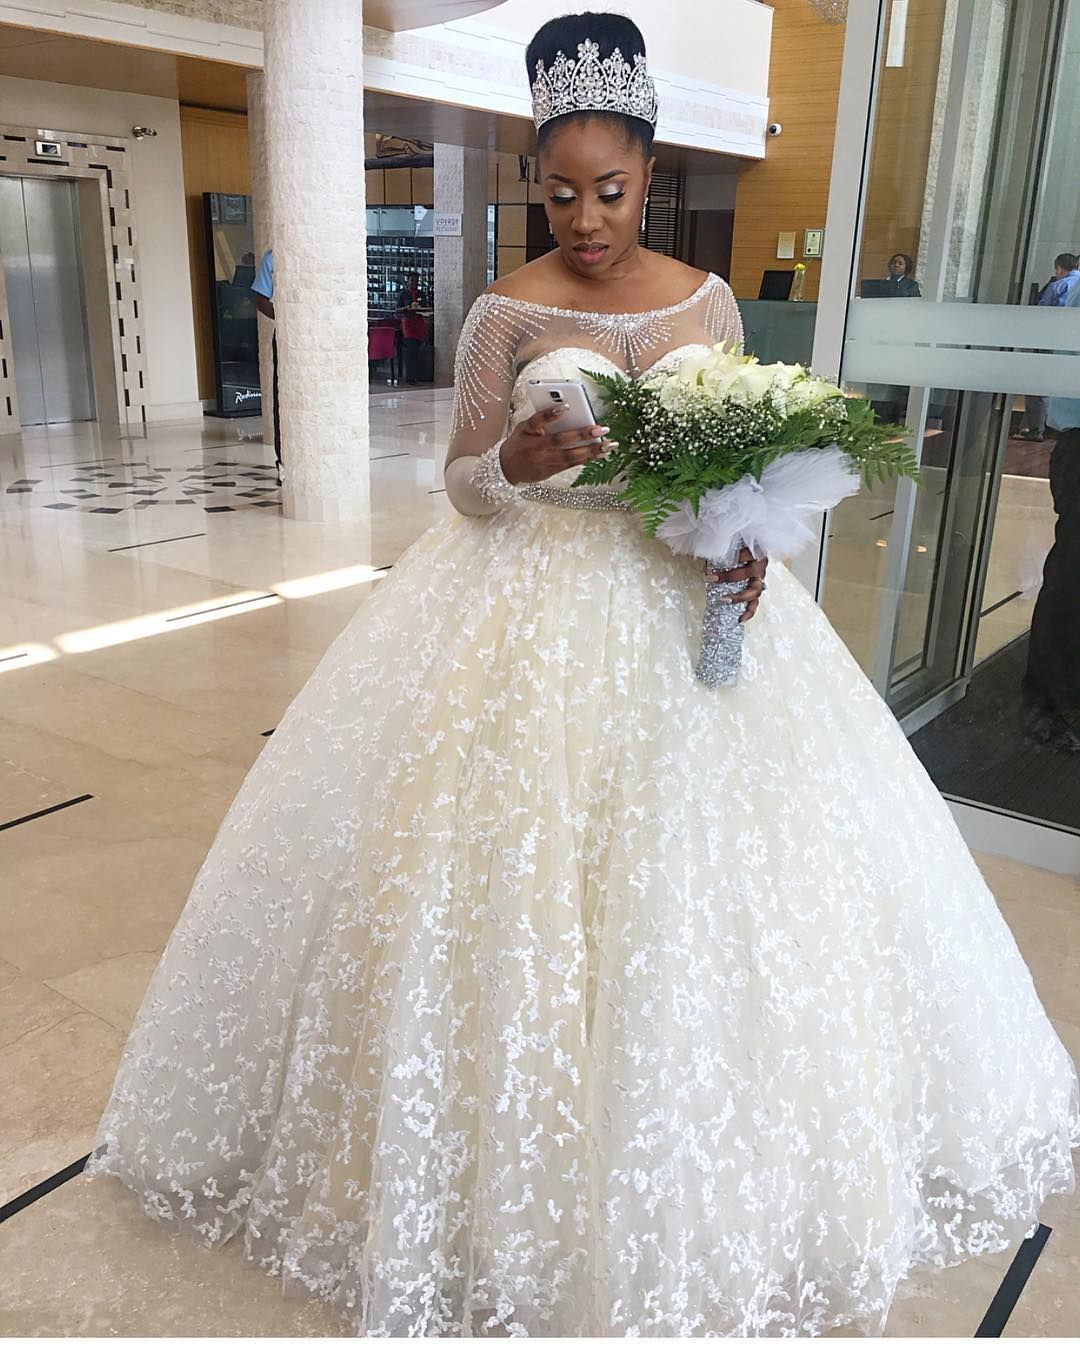 b97d063d0ea2 This long sleeve illusion neckline wedding gown has a princess feel. The ball  gown skirt adds to the fashion design. We can make custom #weddingdresses  like ...